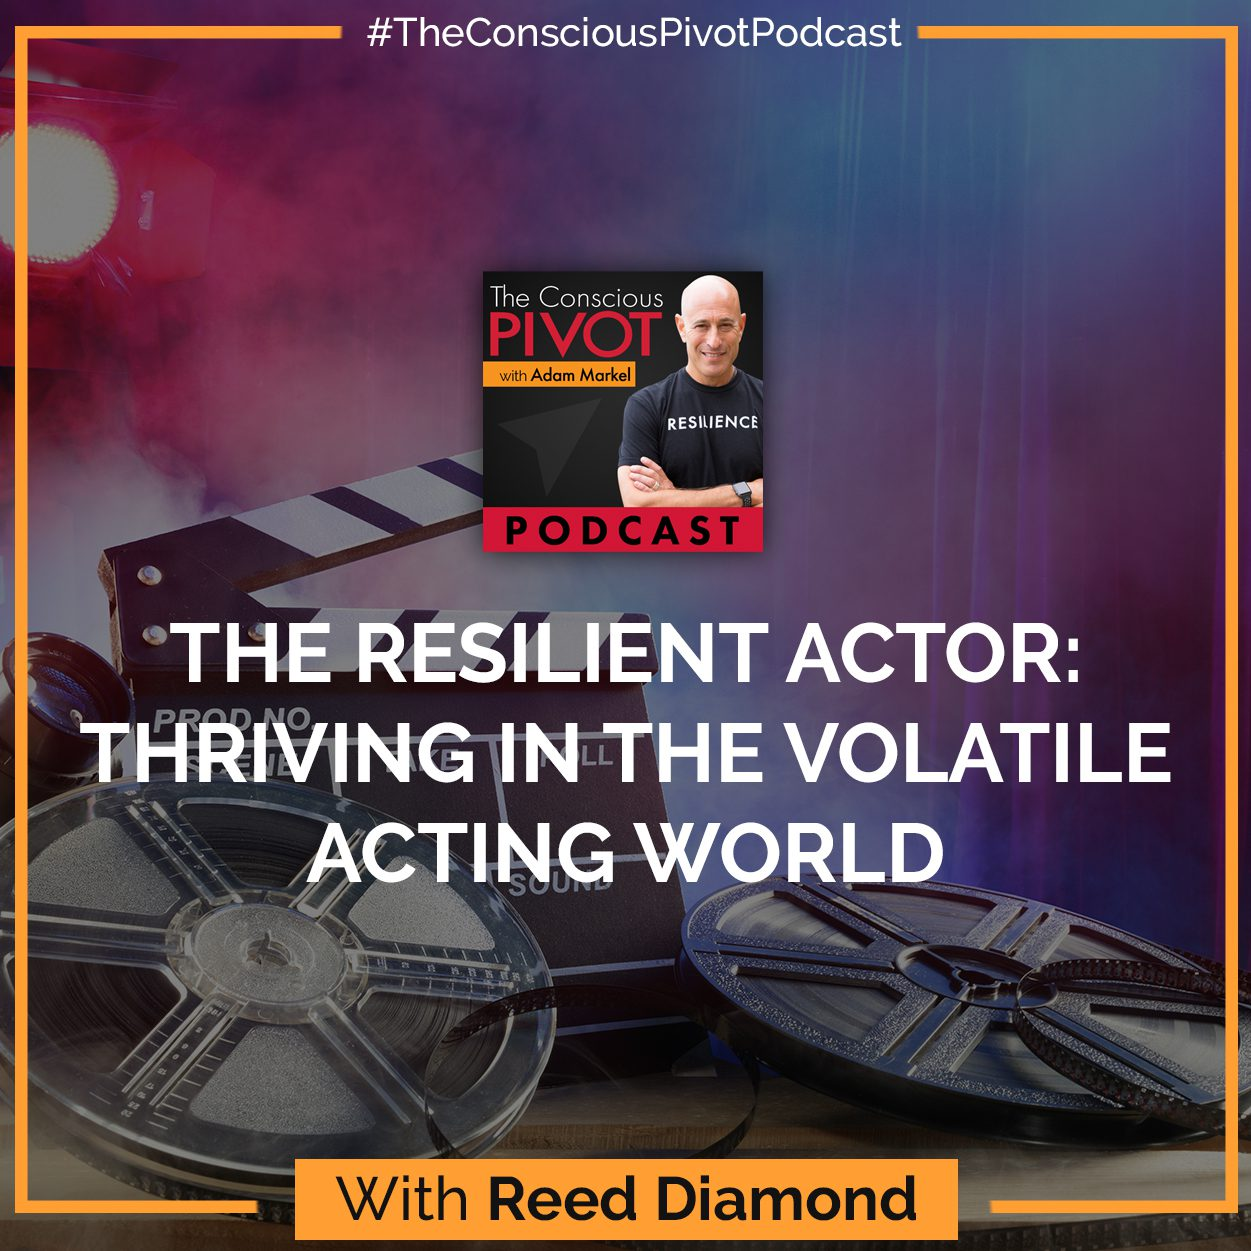 The Resilient Actor: Thriving In The Volatile Acting World With Reed Diamond